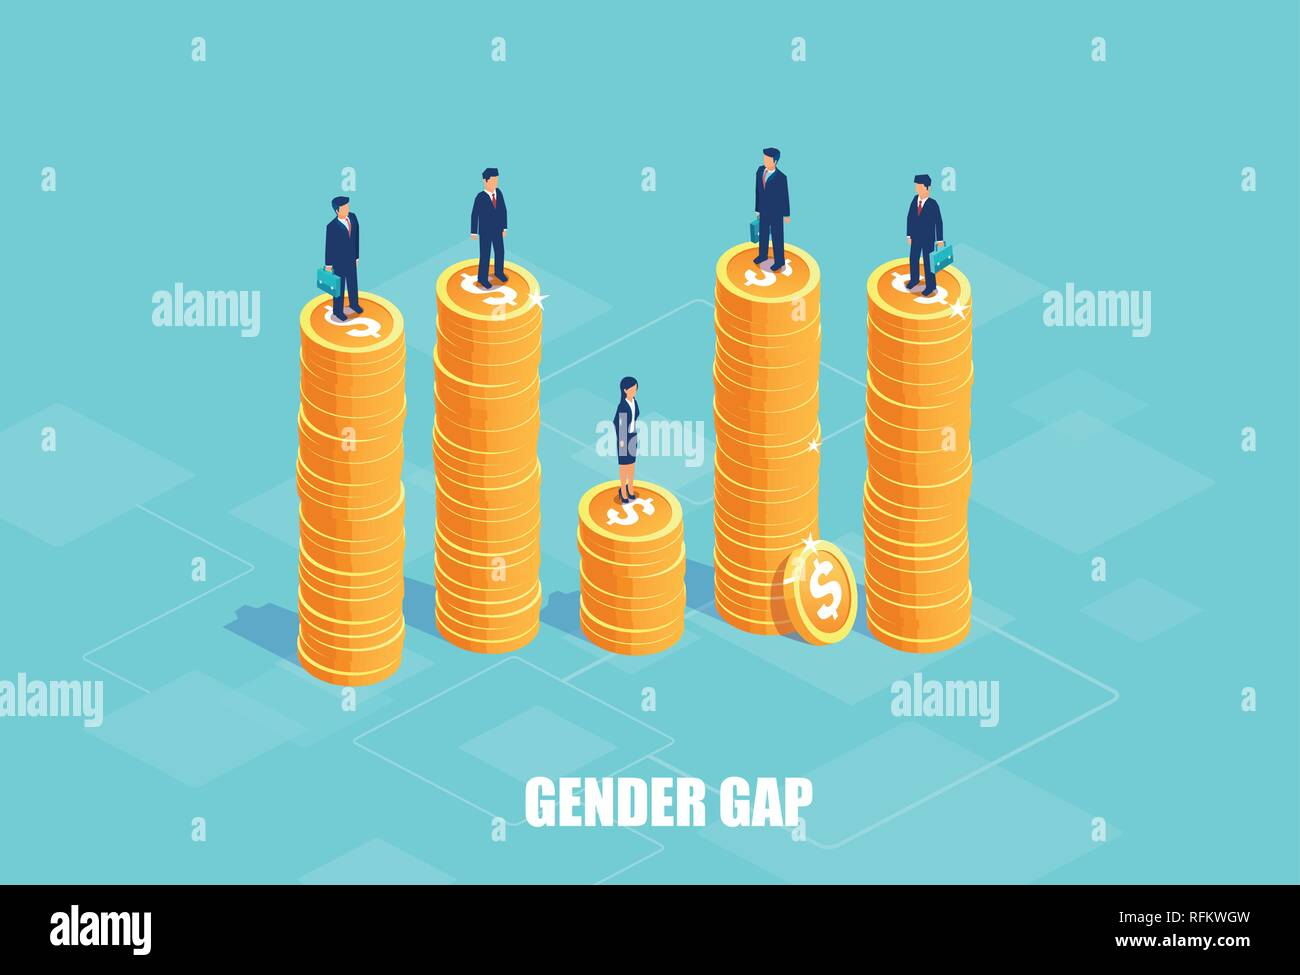 Gender gap and pay difference concept. Vector of businessmen and businesswoman on piles of coins of different height. Symbol of discrimination and inj - Stock Image